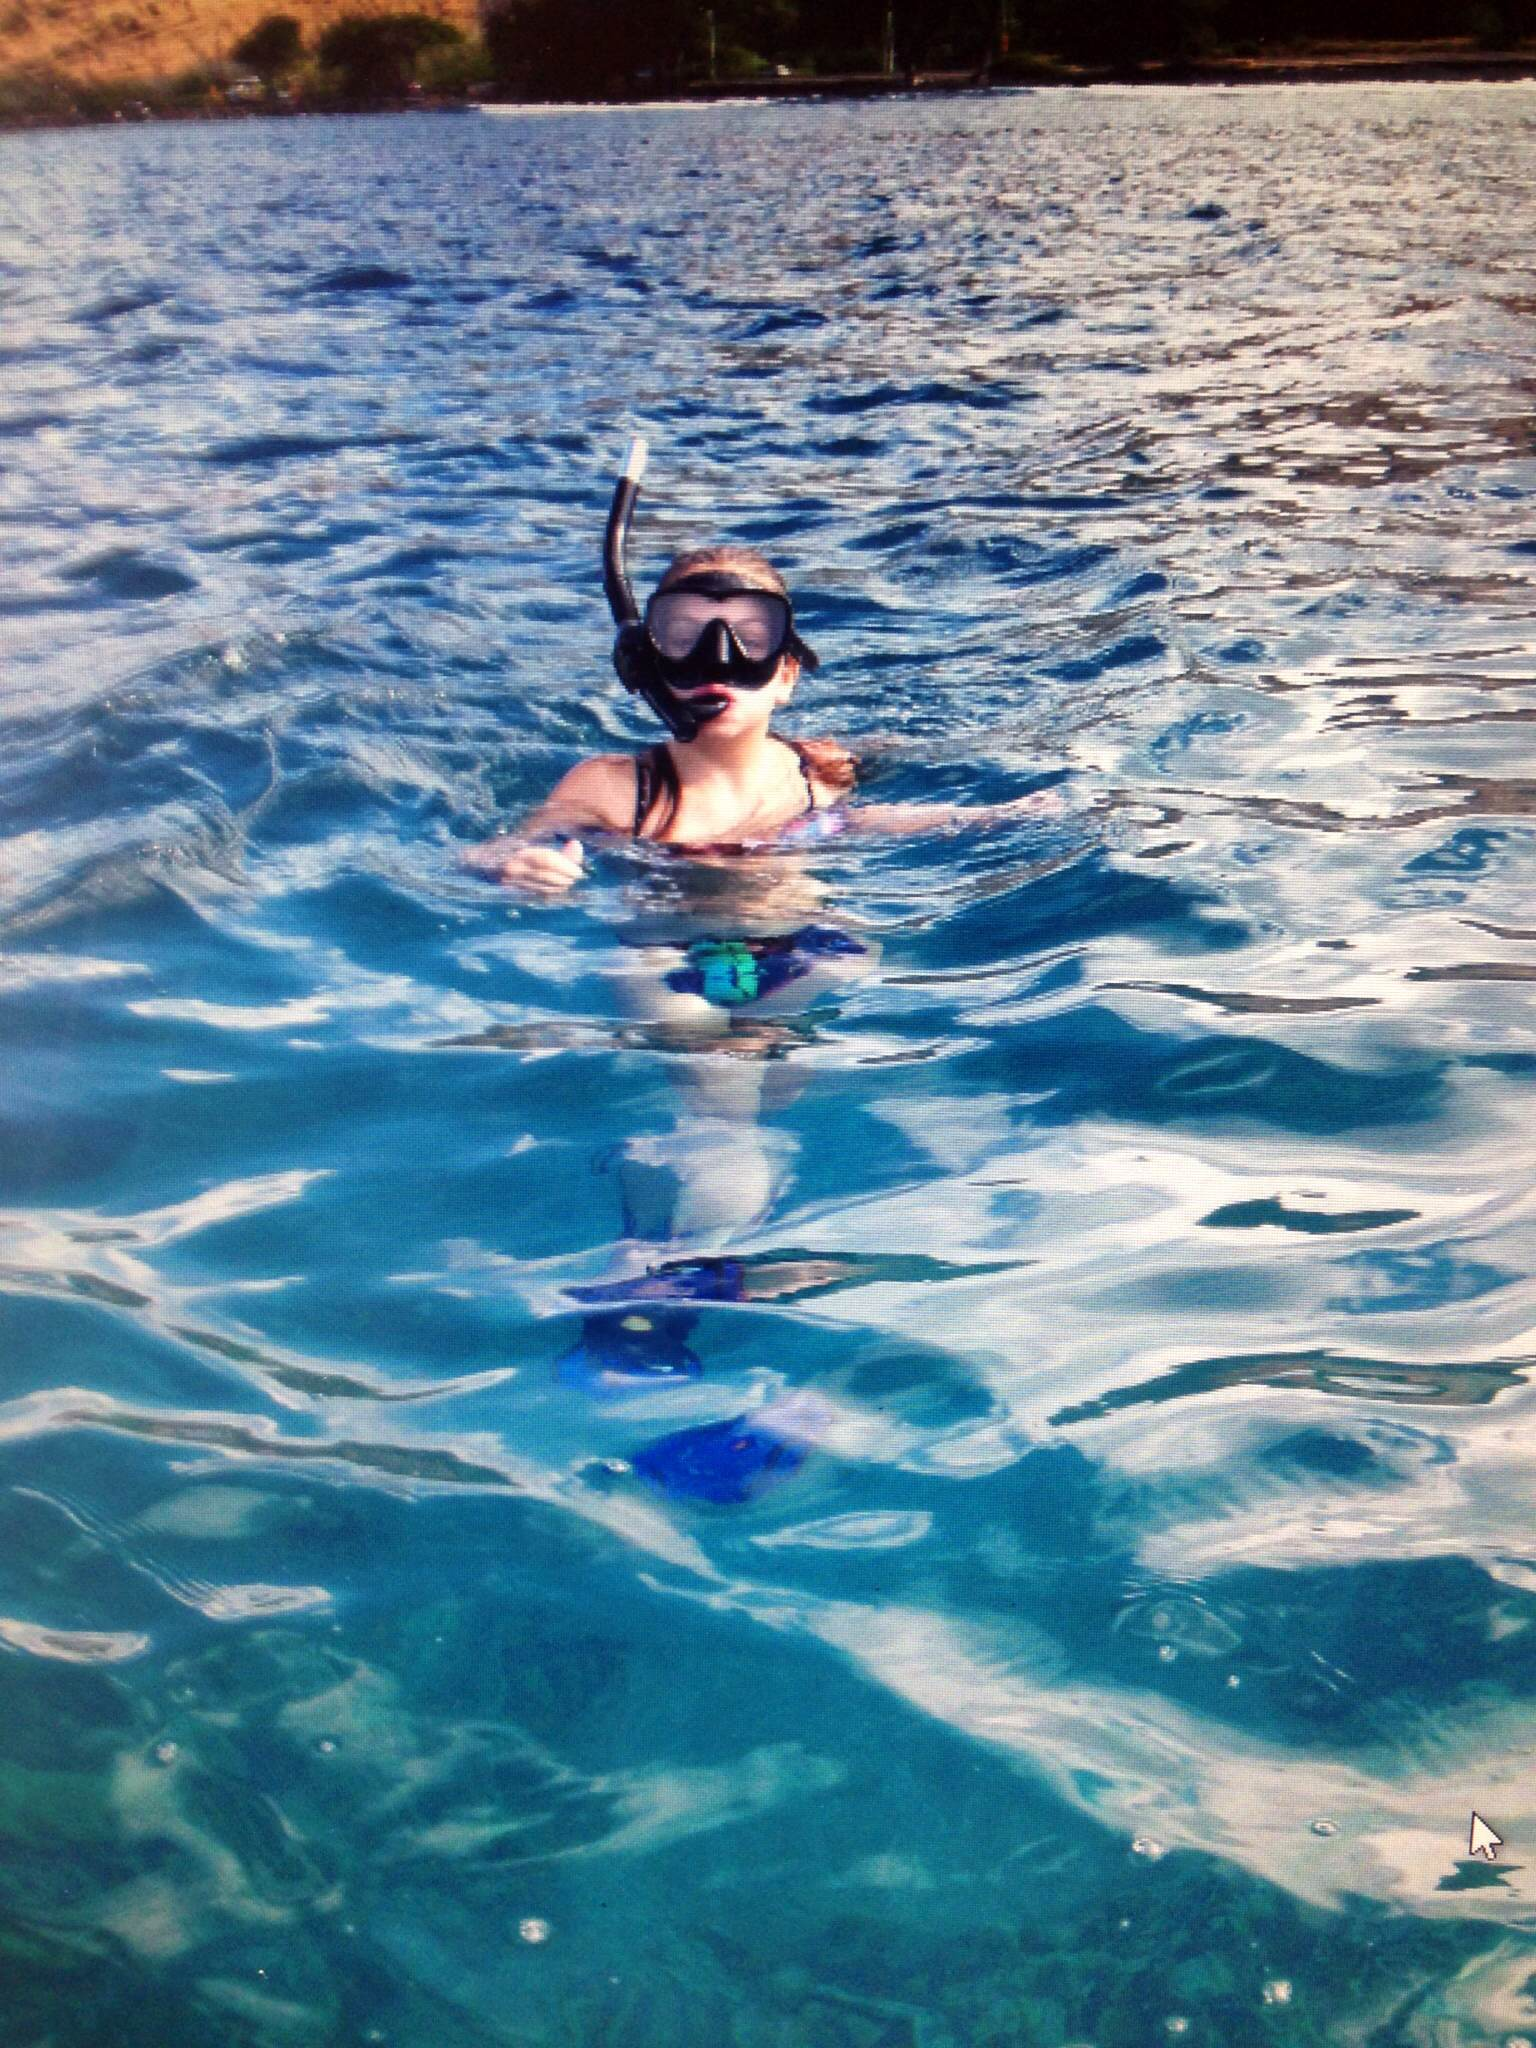 The girl loved snorkeling....